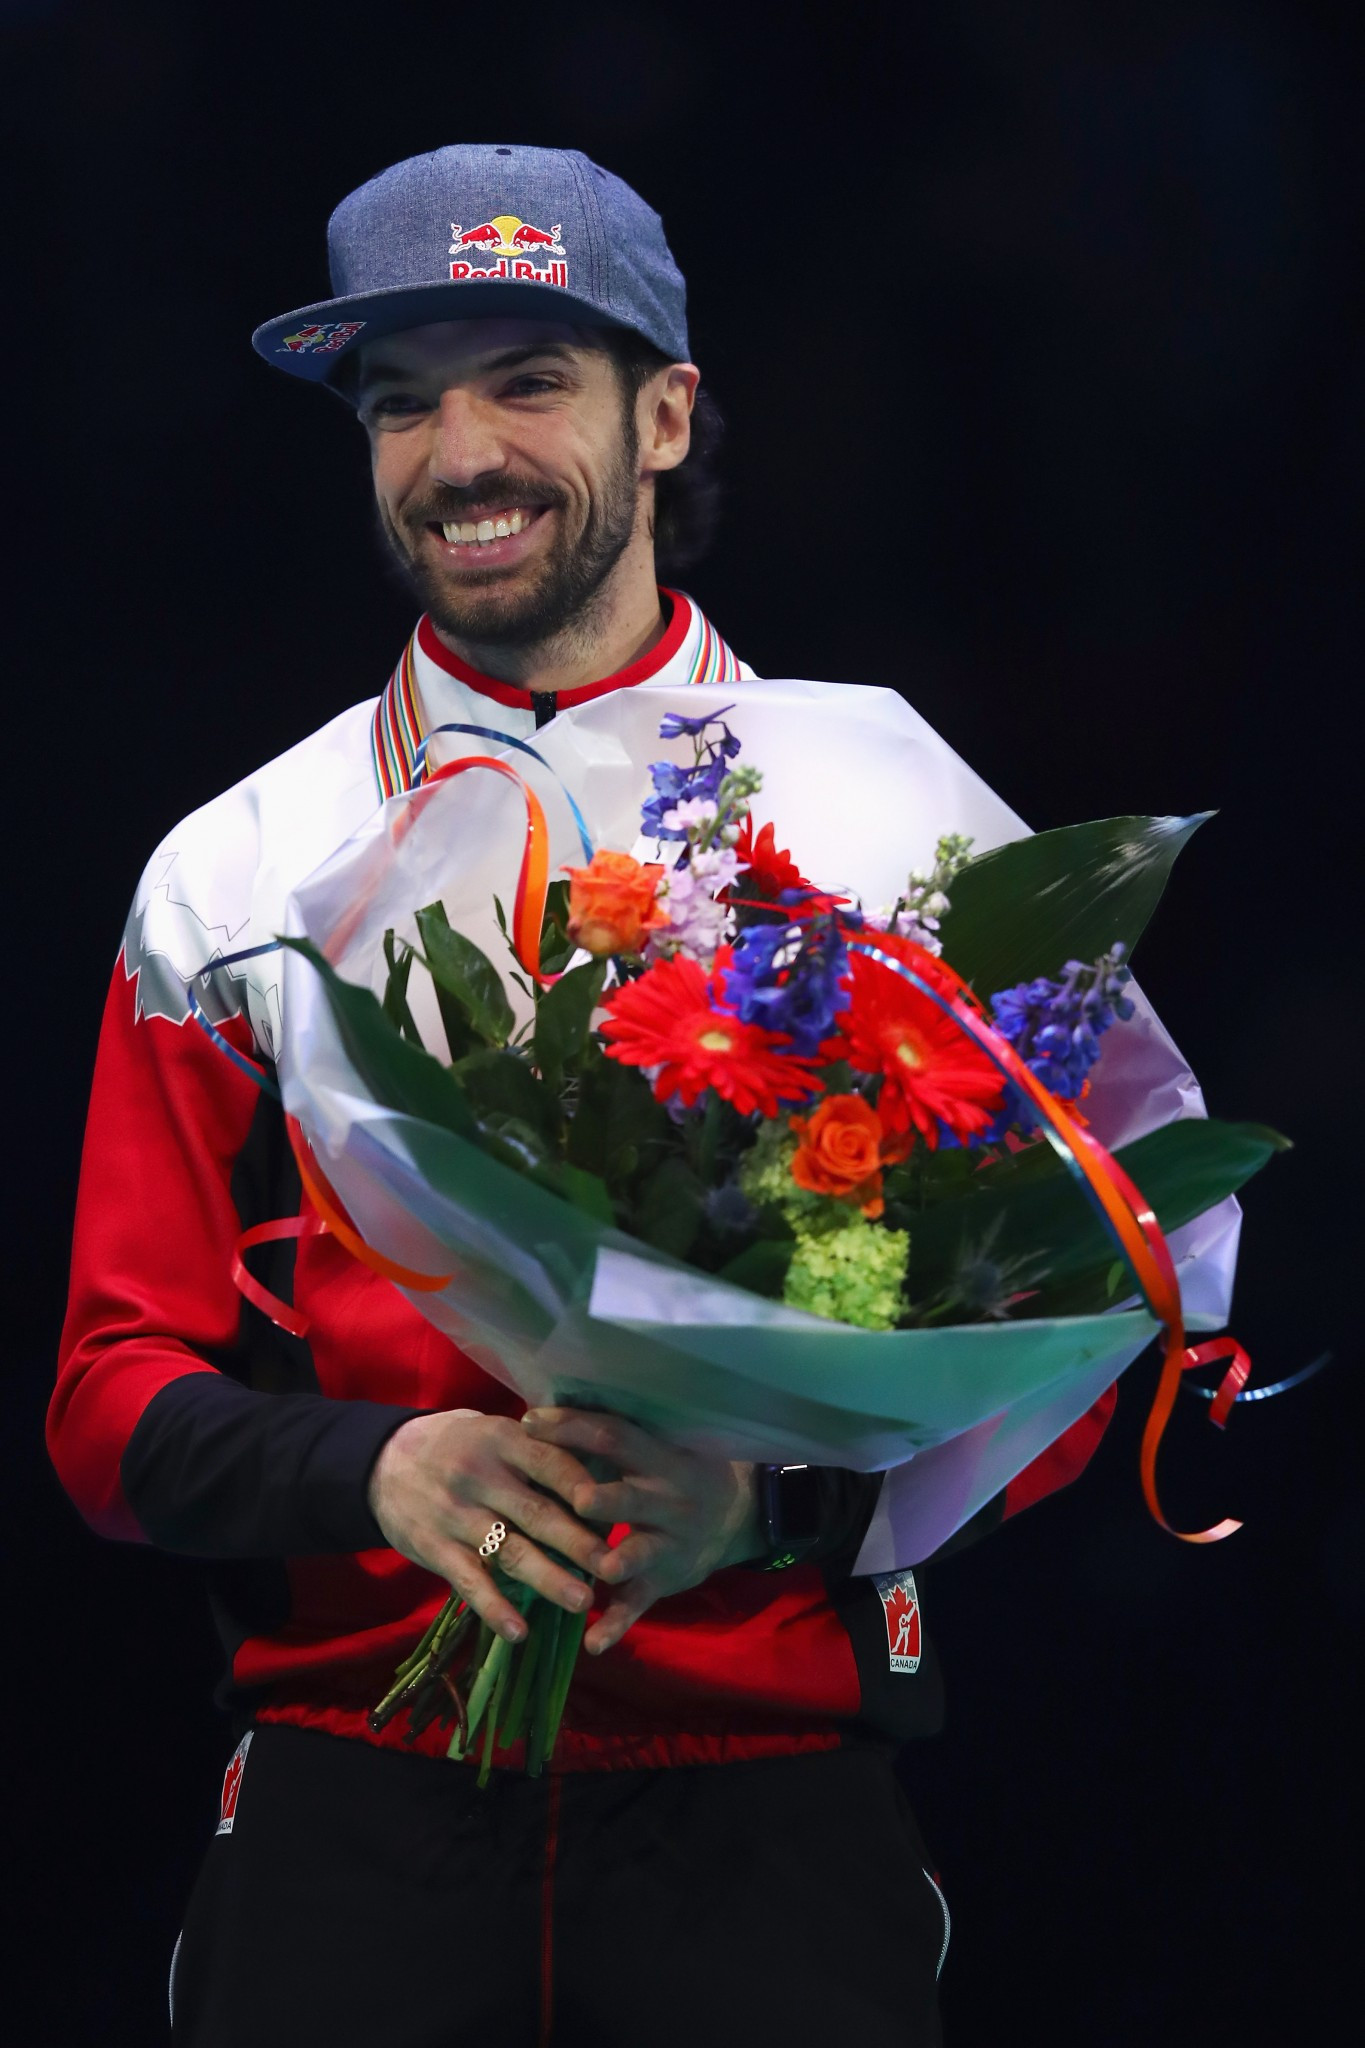 Short track speed skater Hamelin qualifies for Pyeongchang 2018